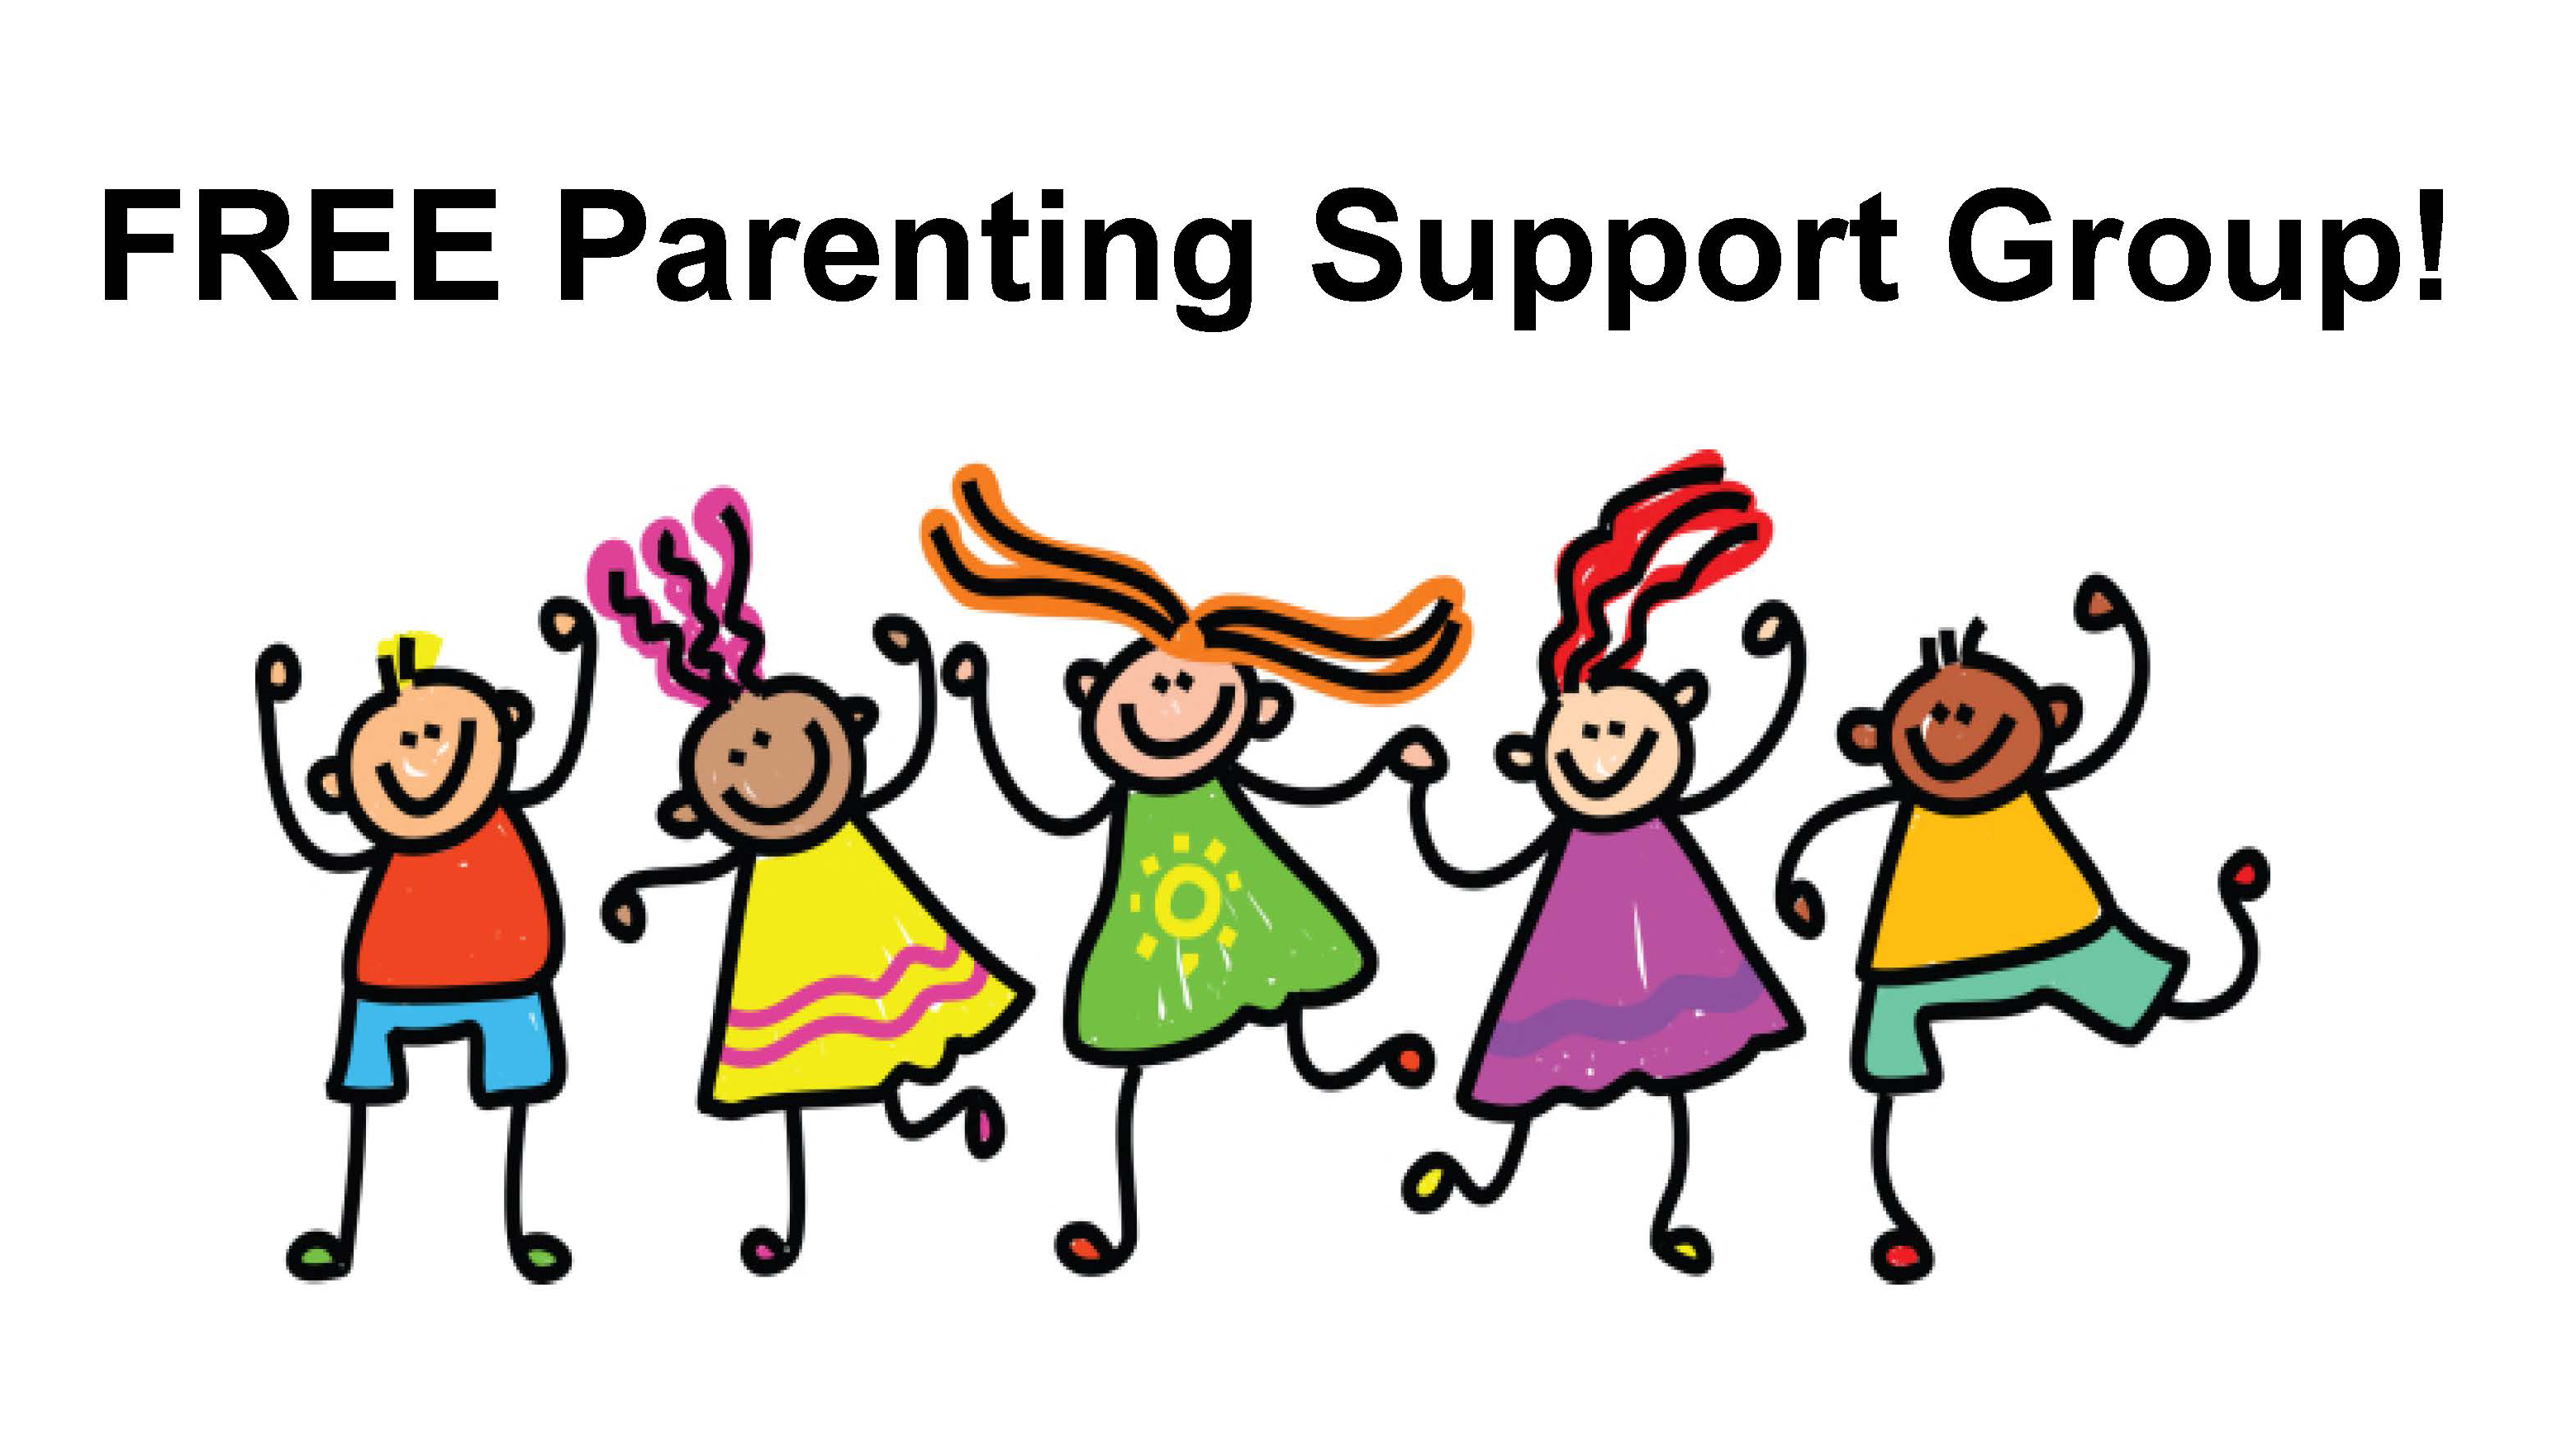 Parenting Support Group